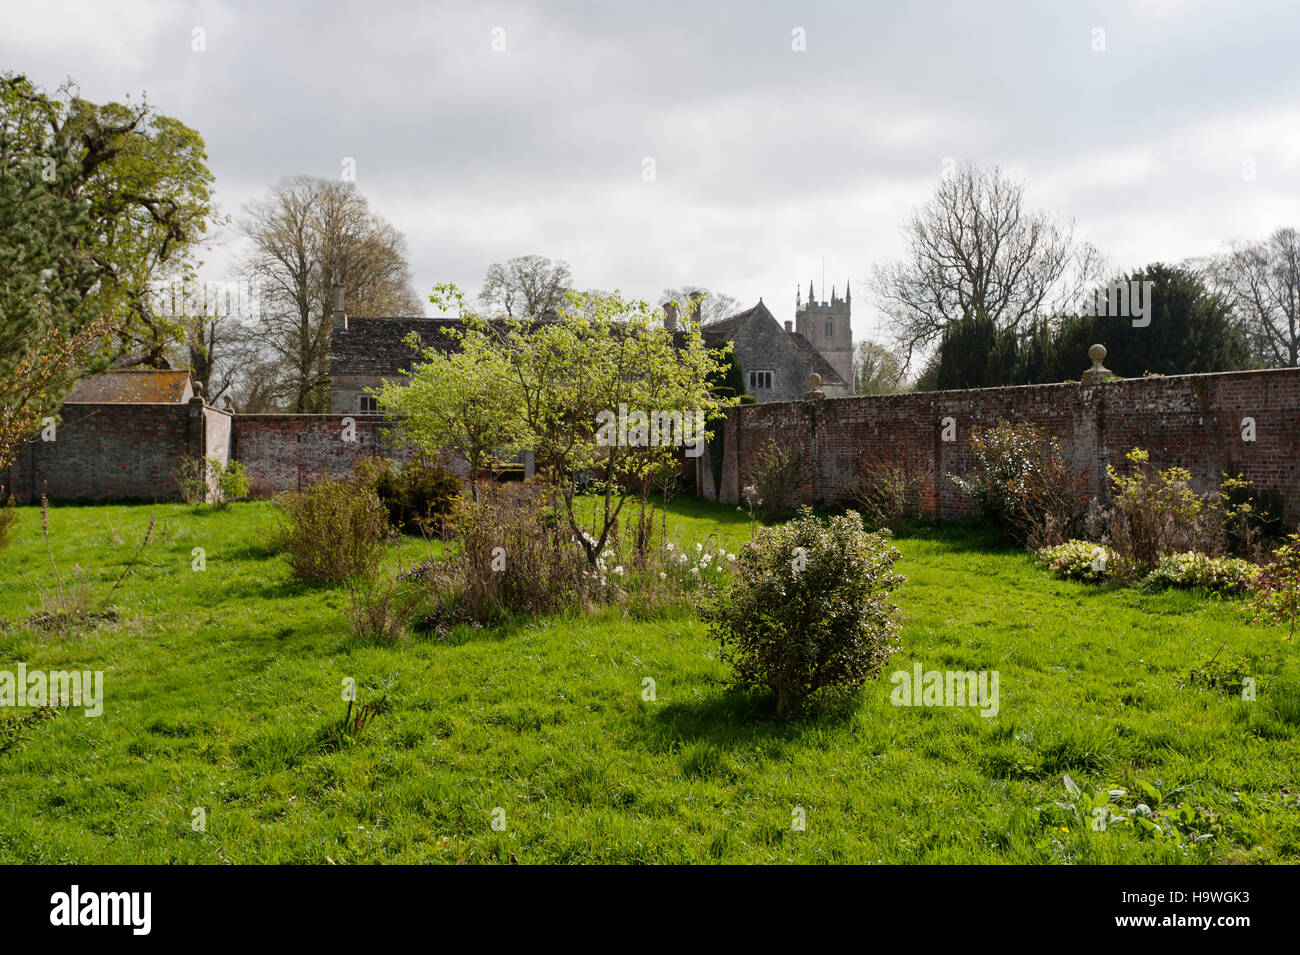 The old Tenant's Garden to be turned into a new kitchen garden at Avebury Manor, Wiltshire. - Stock Image